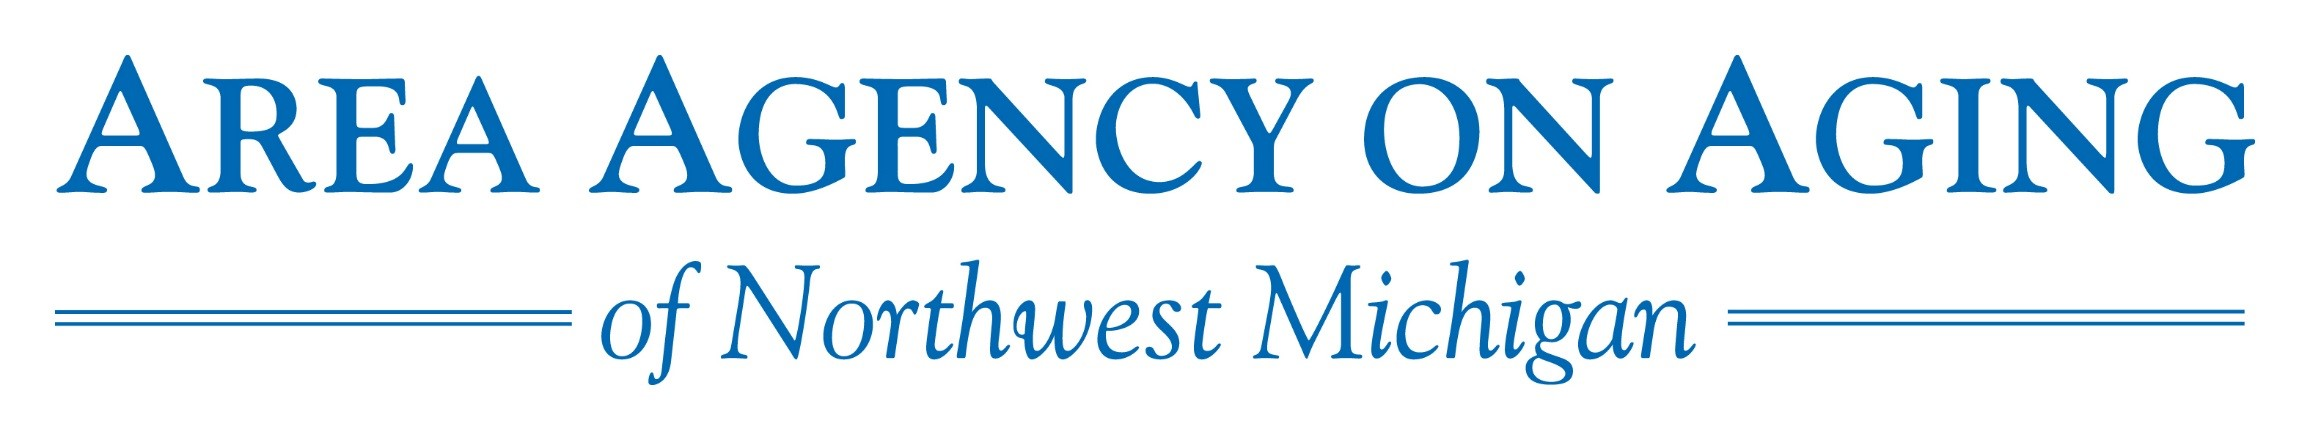 Area Agency on Aging of Northwest Michigan